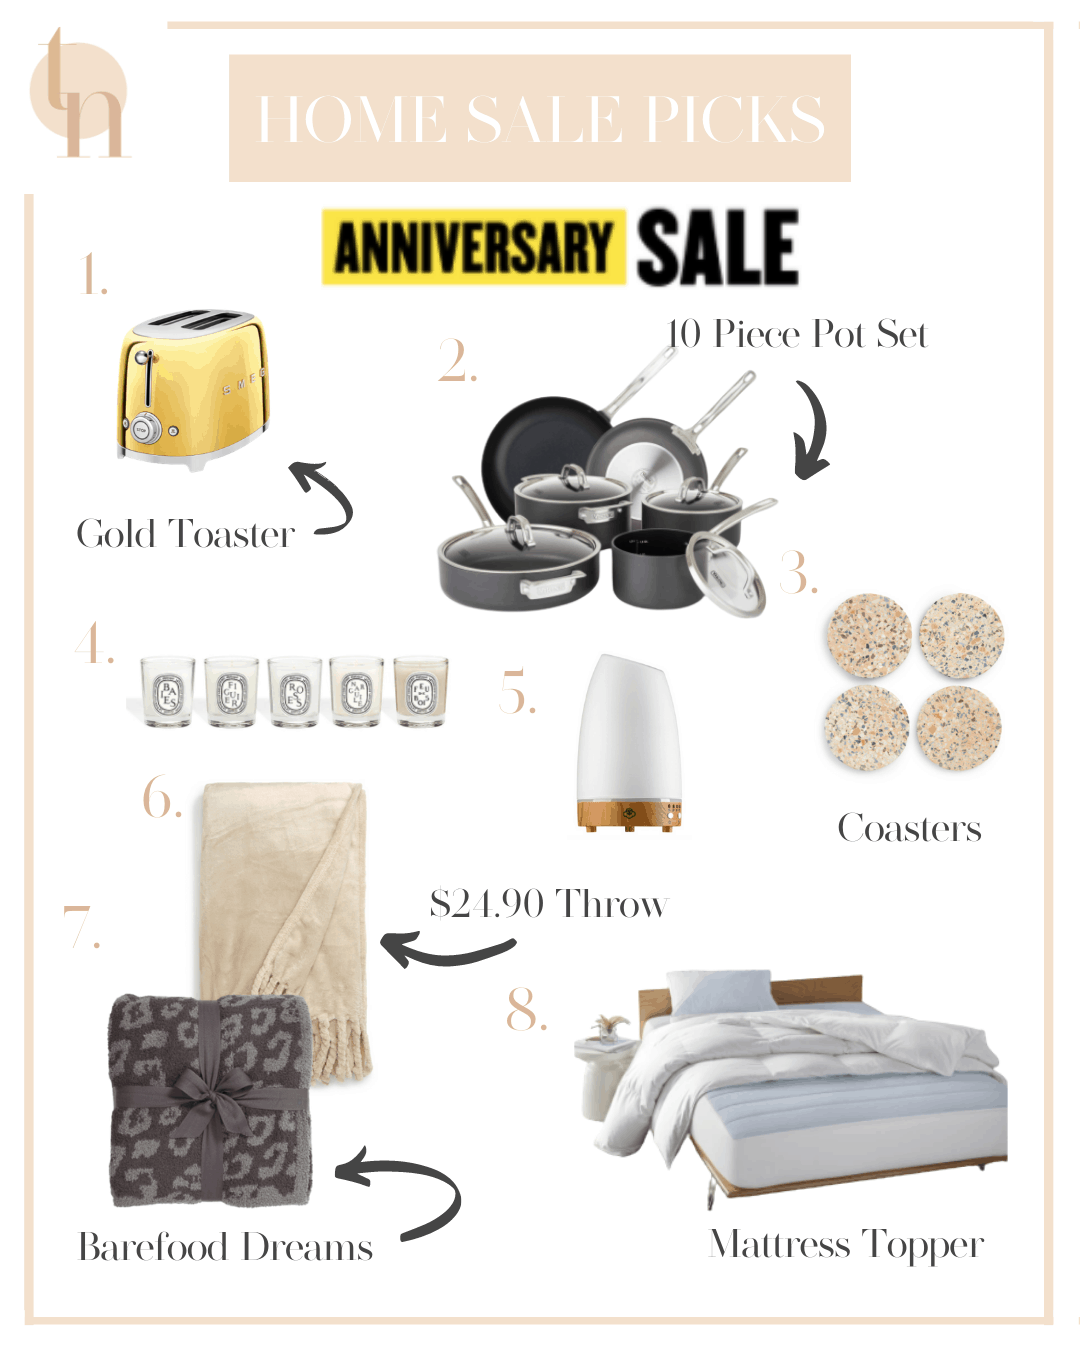 Nordstrom Anniversary Sale by popular Dallas life and style blog, Glamorous Versatility: collage image of Bliss Plush Throw, Barefoot Dreams Animal Print Blanket, Serene house Diffuser, Smeg Gold Toaster, Viking 10 piece nonstick set, Viking Cast Iron Griddle, and Mattress Pad.